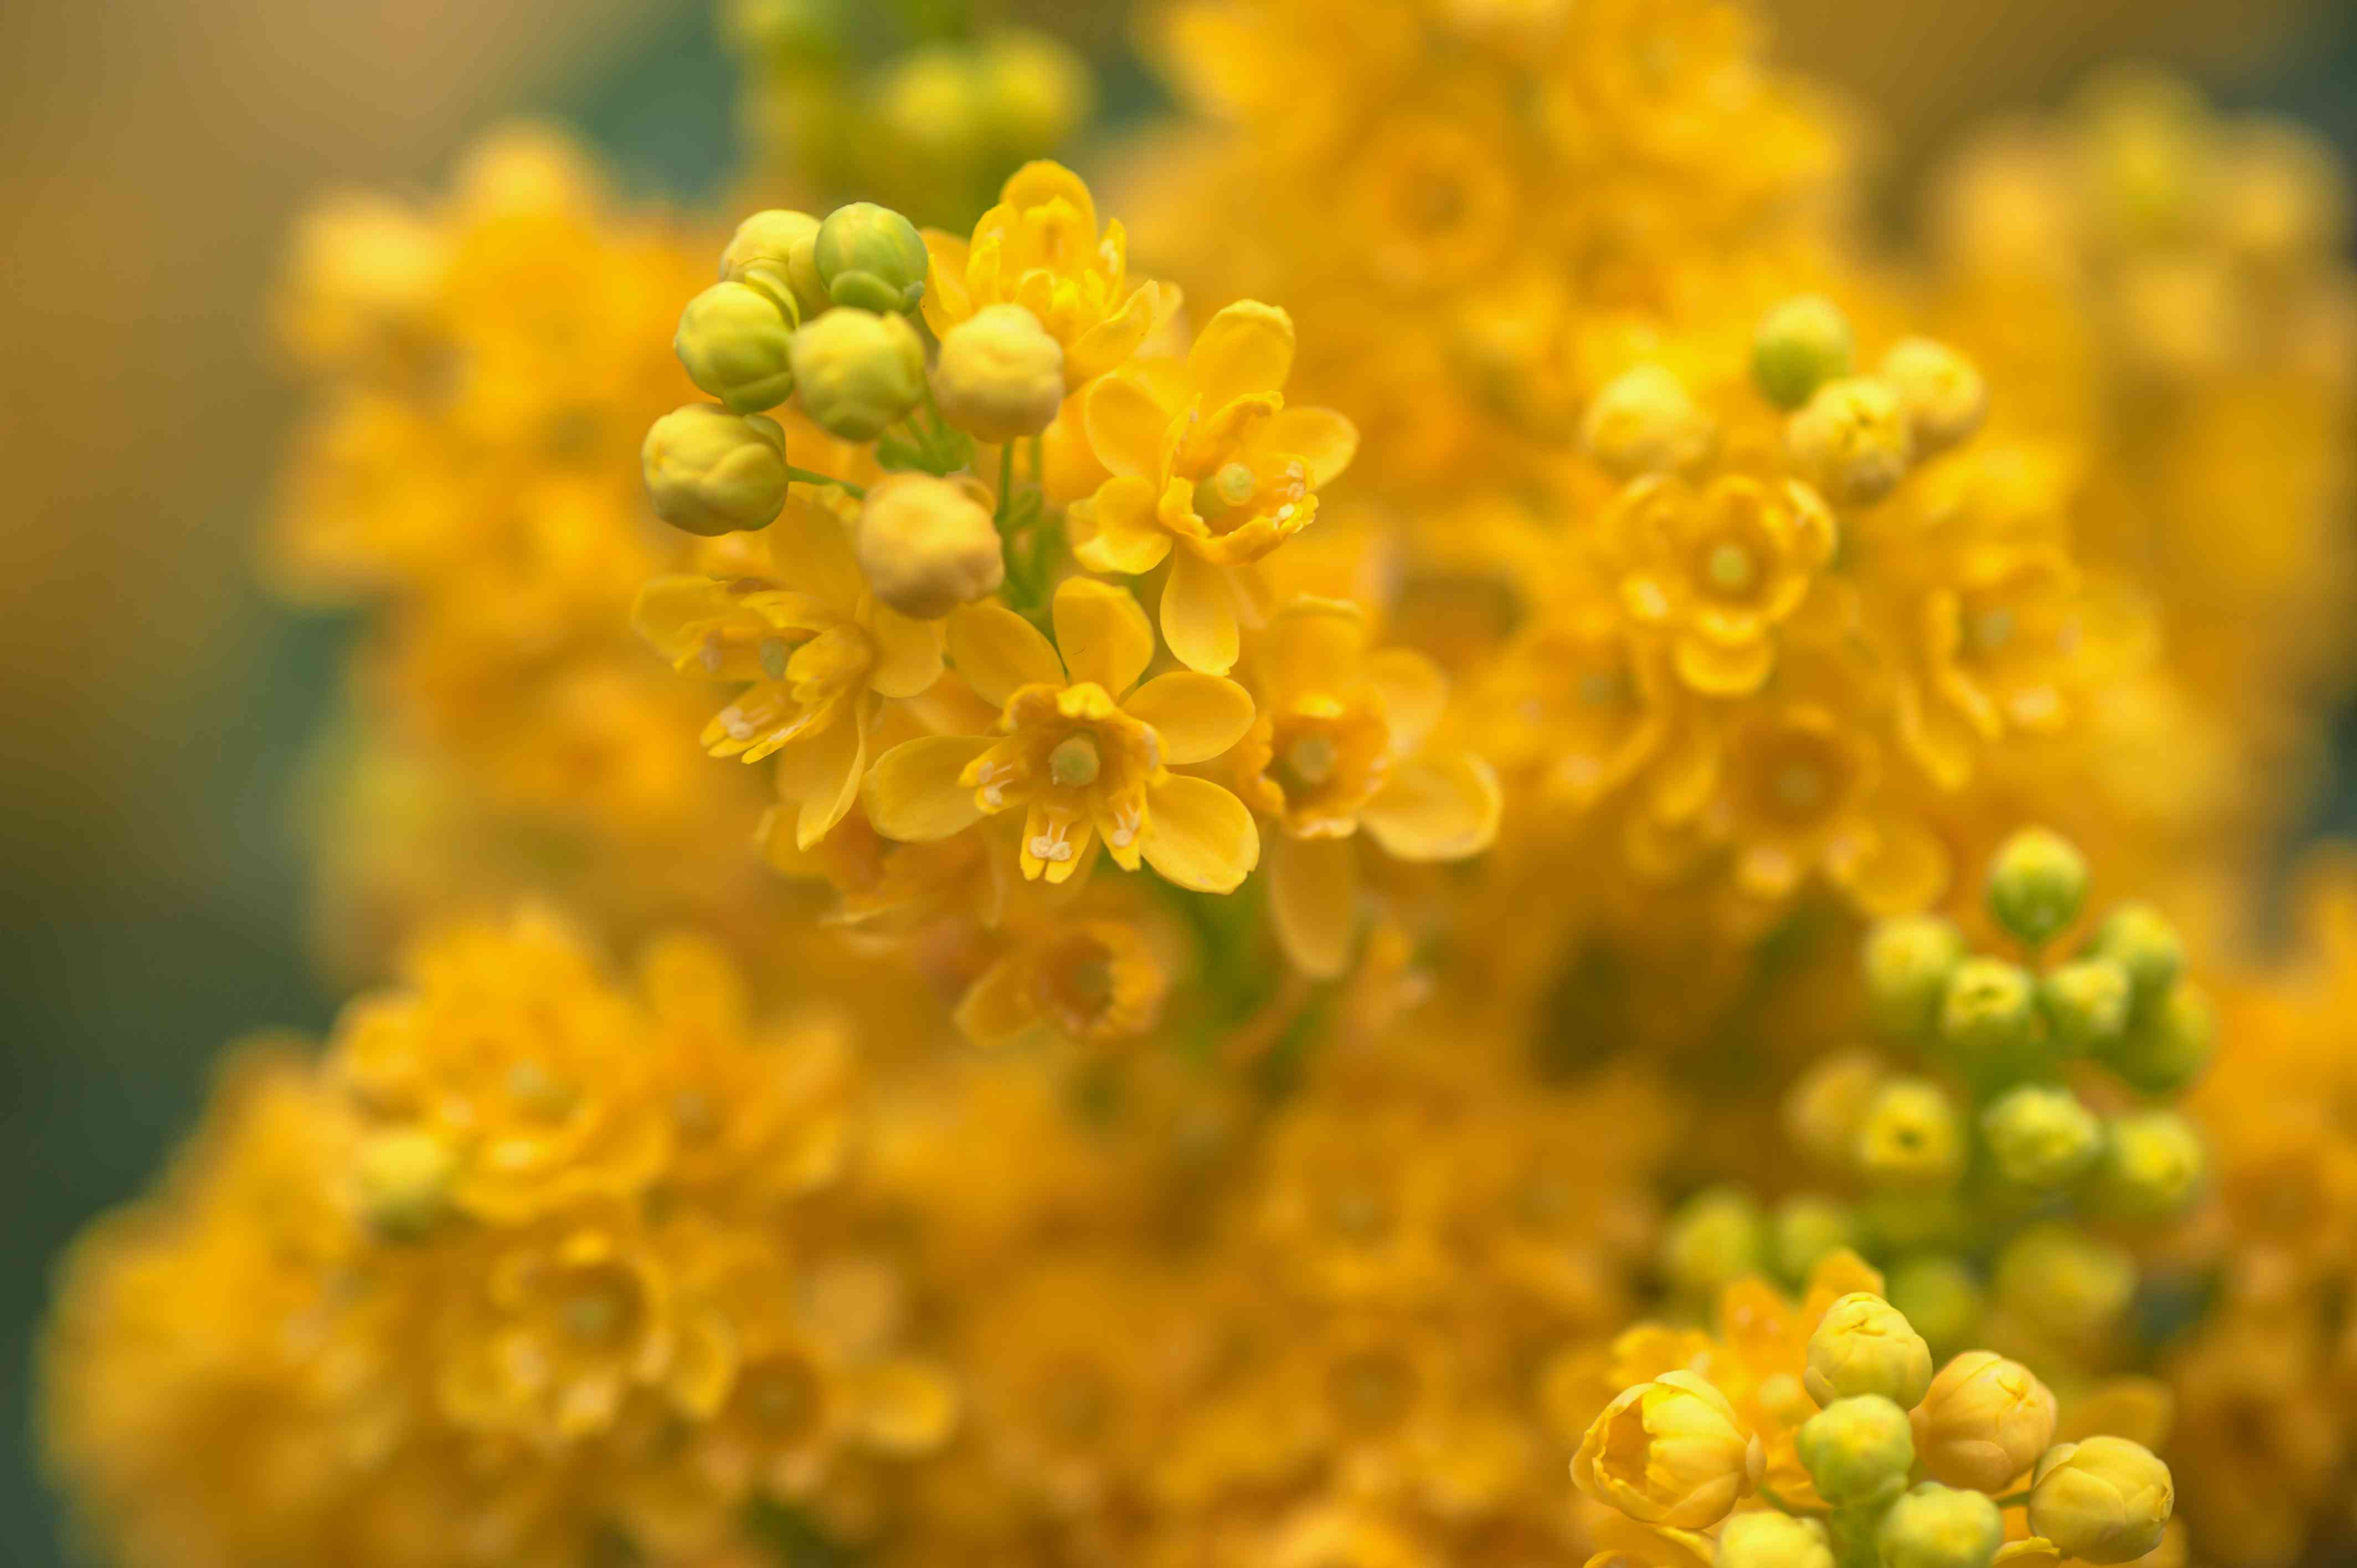 Oregon grape with yellow flowers and buds closeup